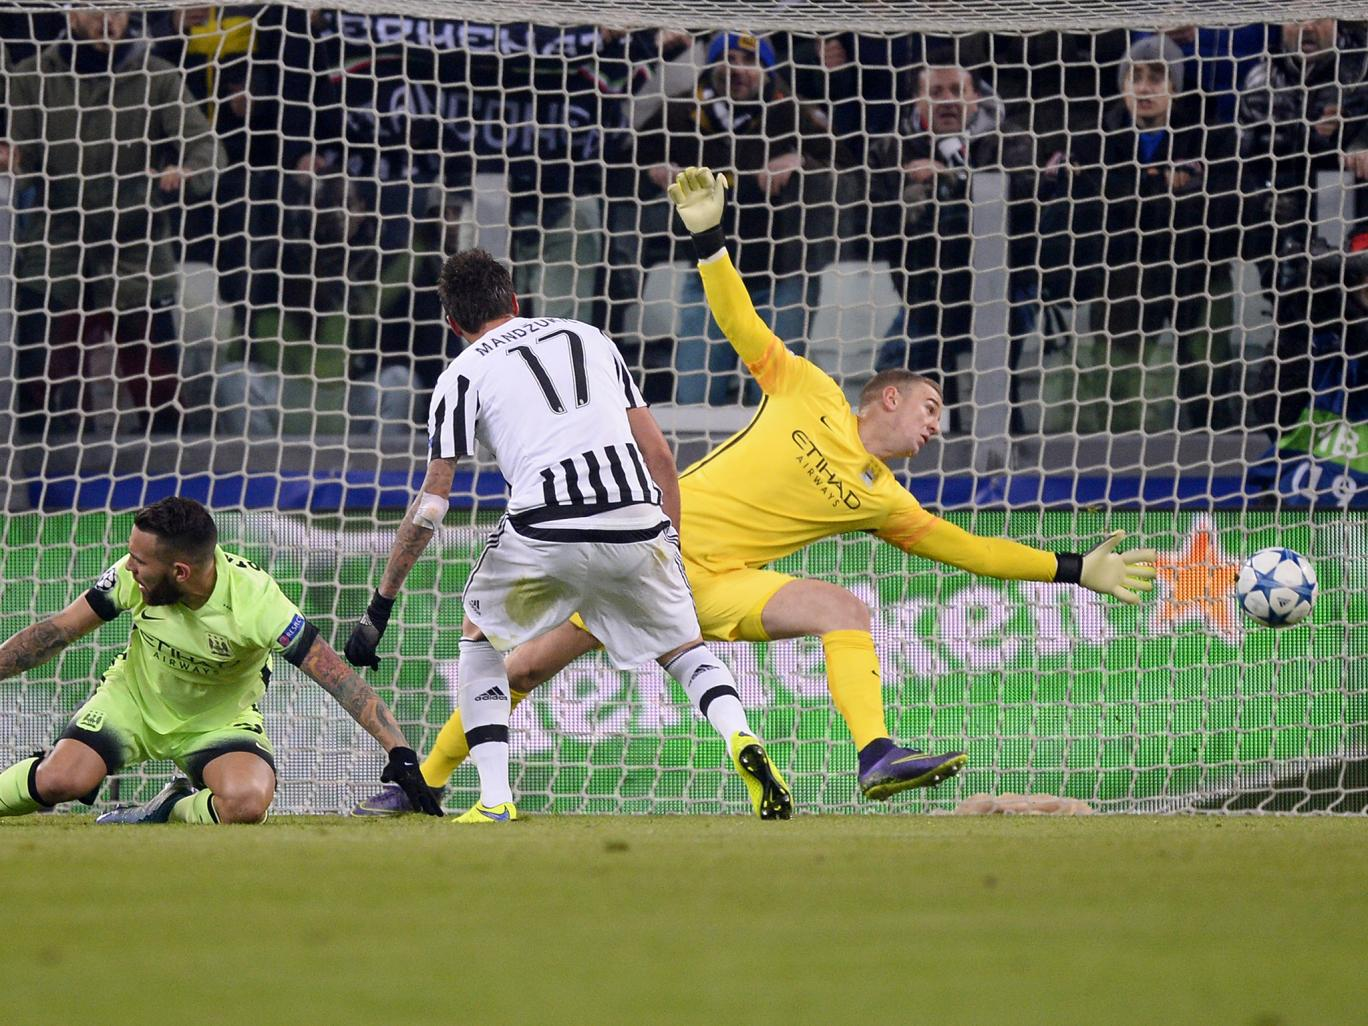 Hartbeat - Joe can't keep out Mandzukic's winner against Juventus, but City still won Group D.